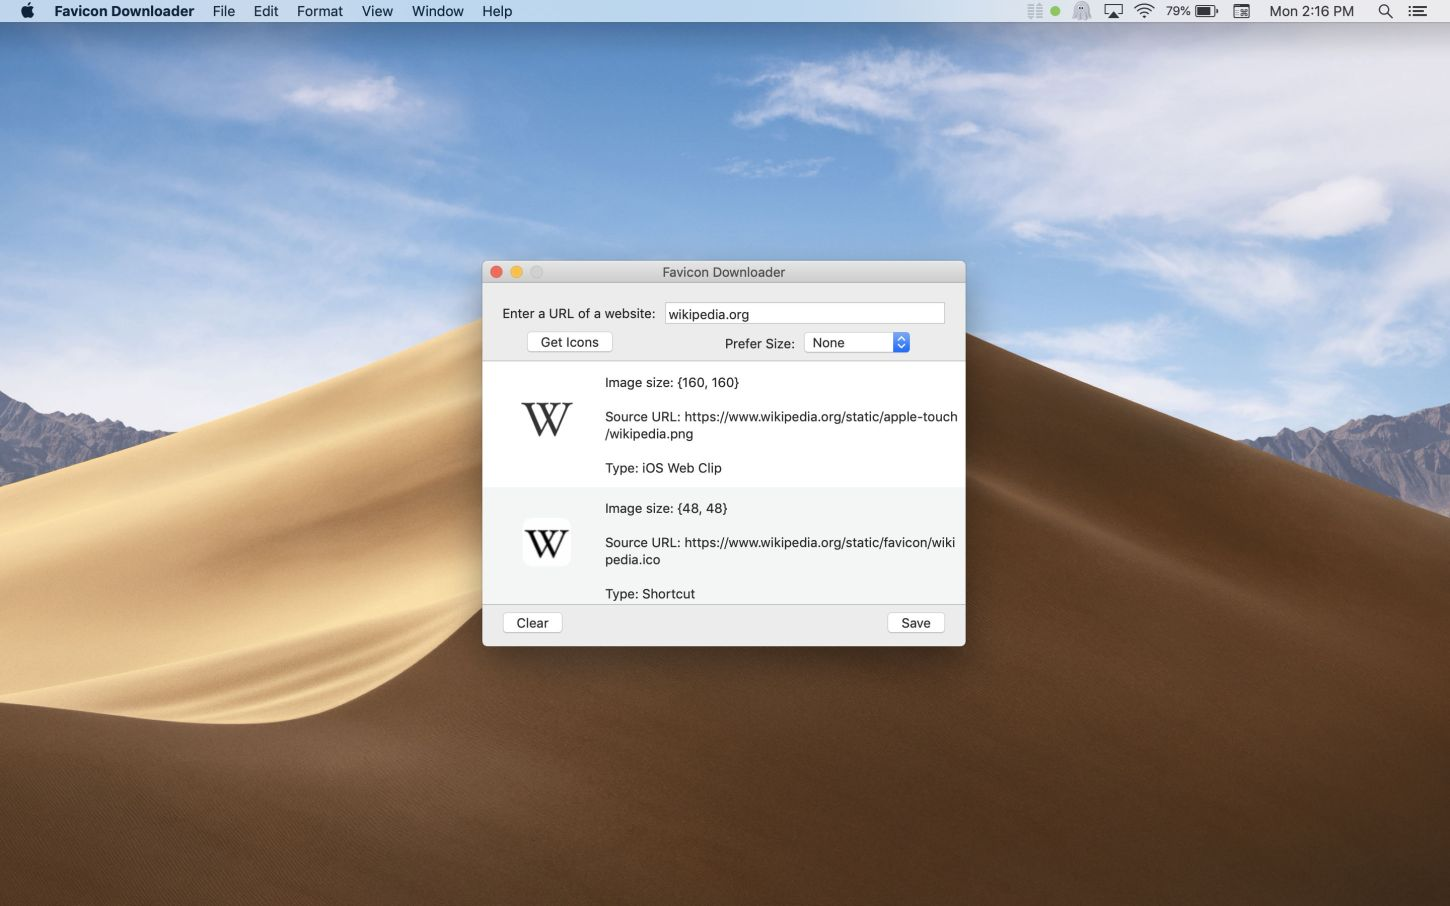 Favicon Downloader Mac app screenshot showing Wikipedia icons.